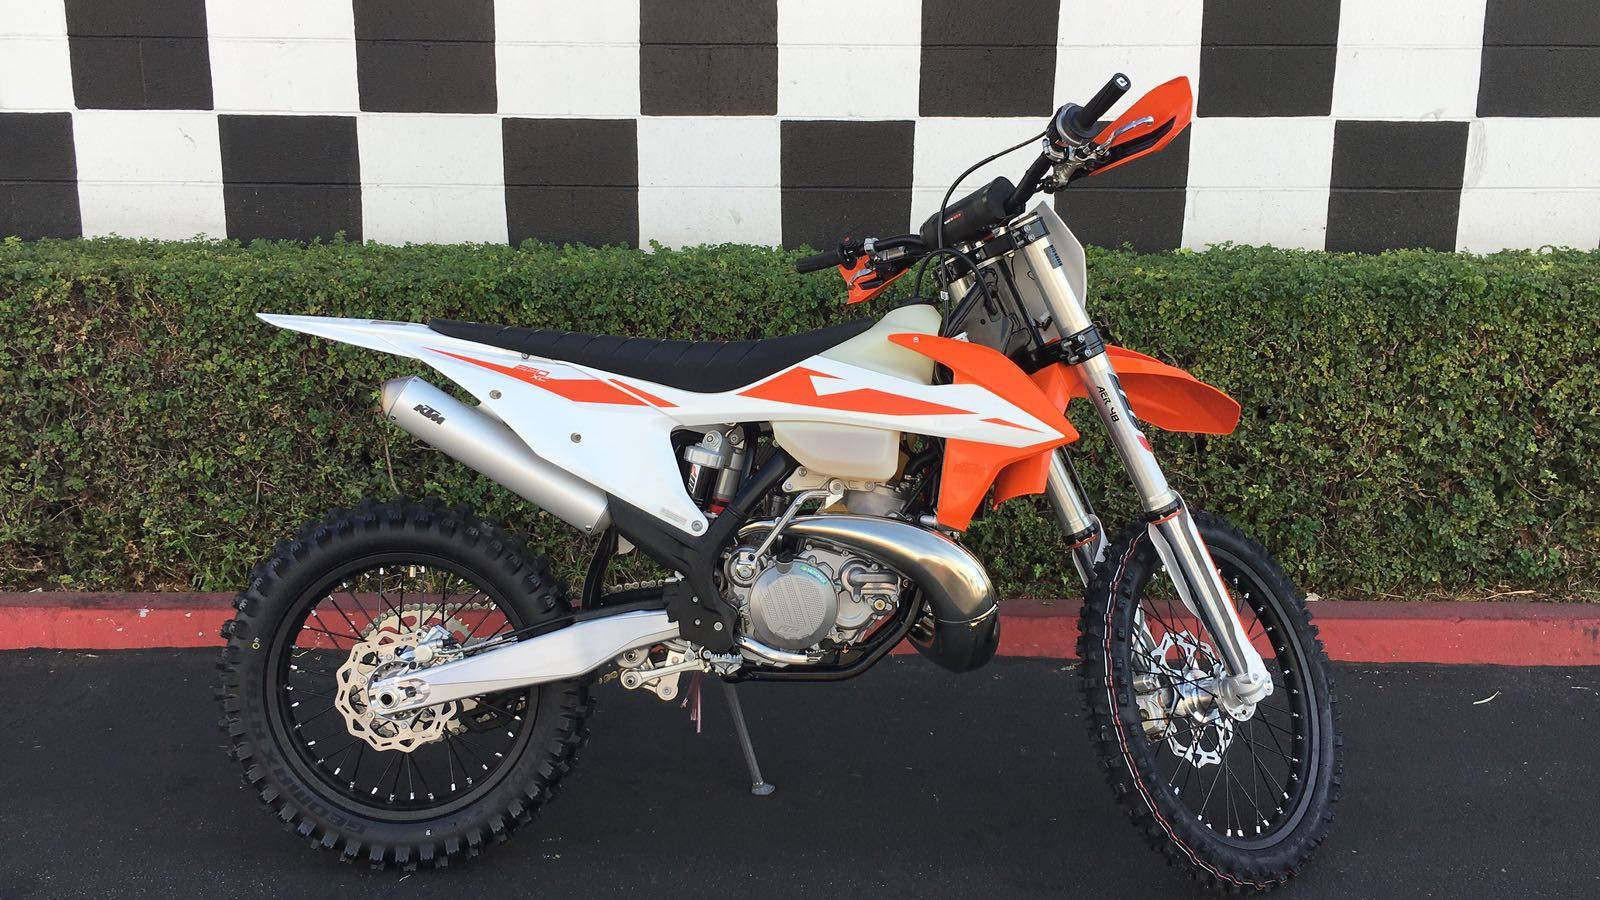 2019 KTM 250 XC in Costa Mesa, California - Photo 1